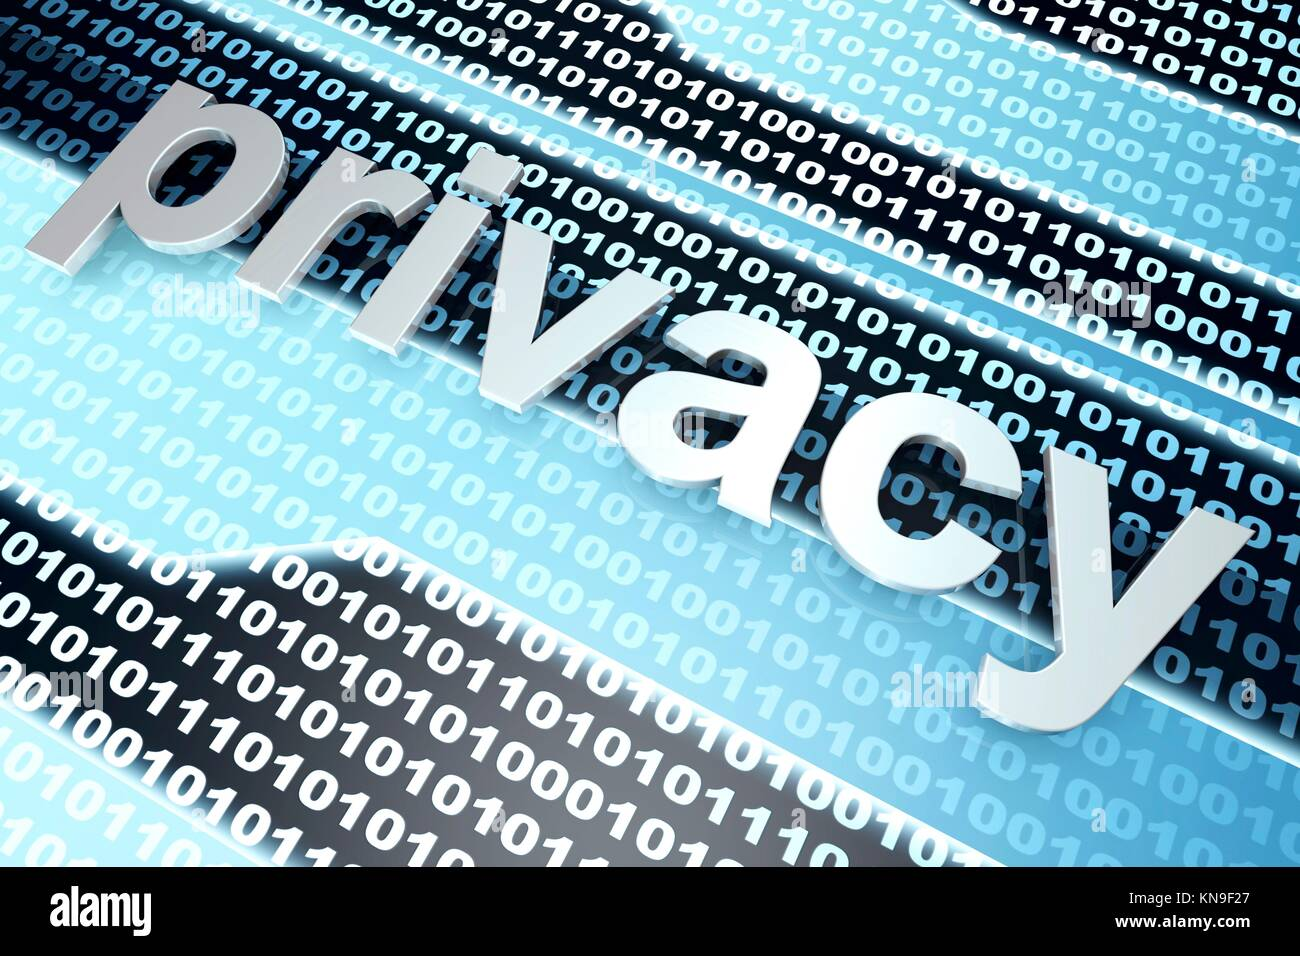 The word Privacy in front of a binary background. - Stock Image